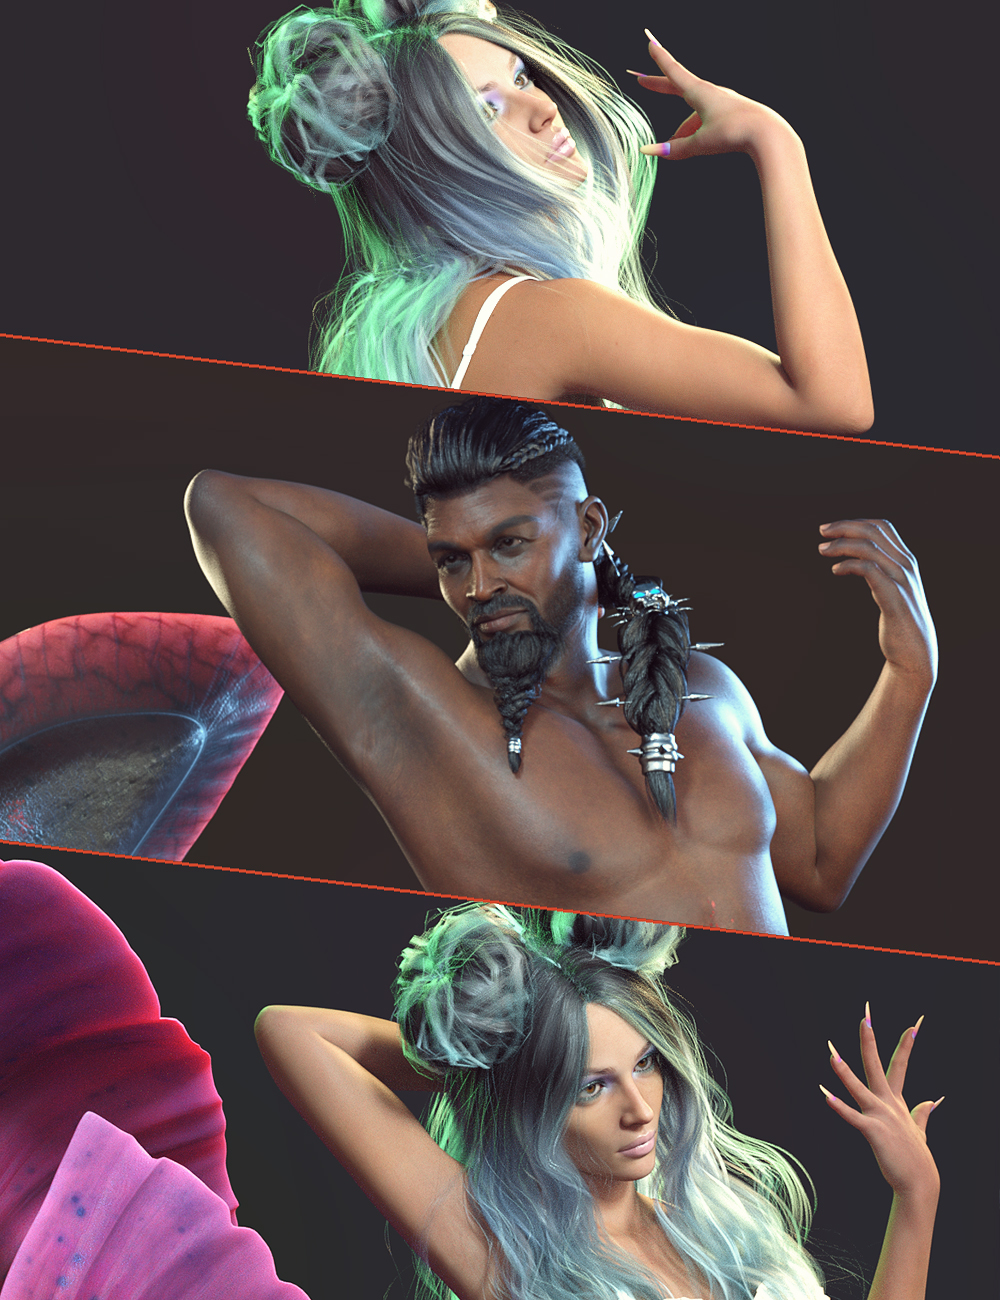 GF Mermaid Fantasy Poses for Zale 8.1 and Coral 8.1 by: Nirvana, 3D Models by Daz 3D